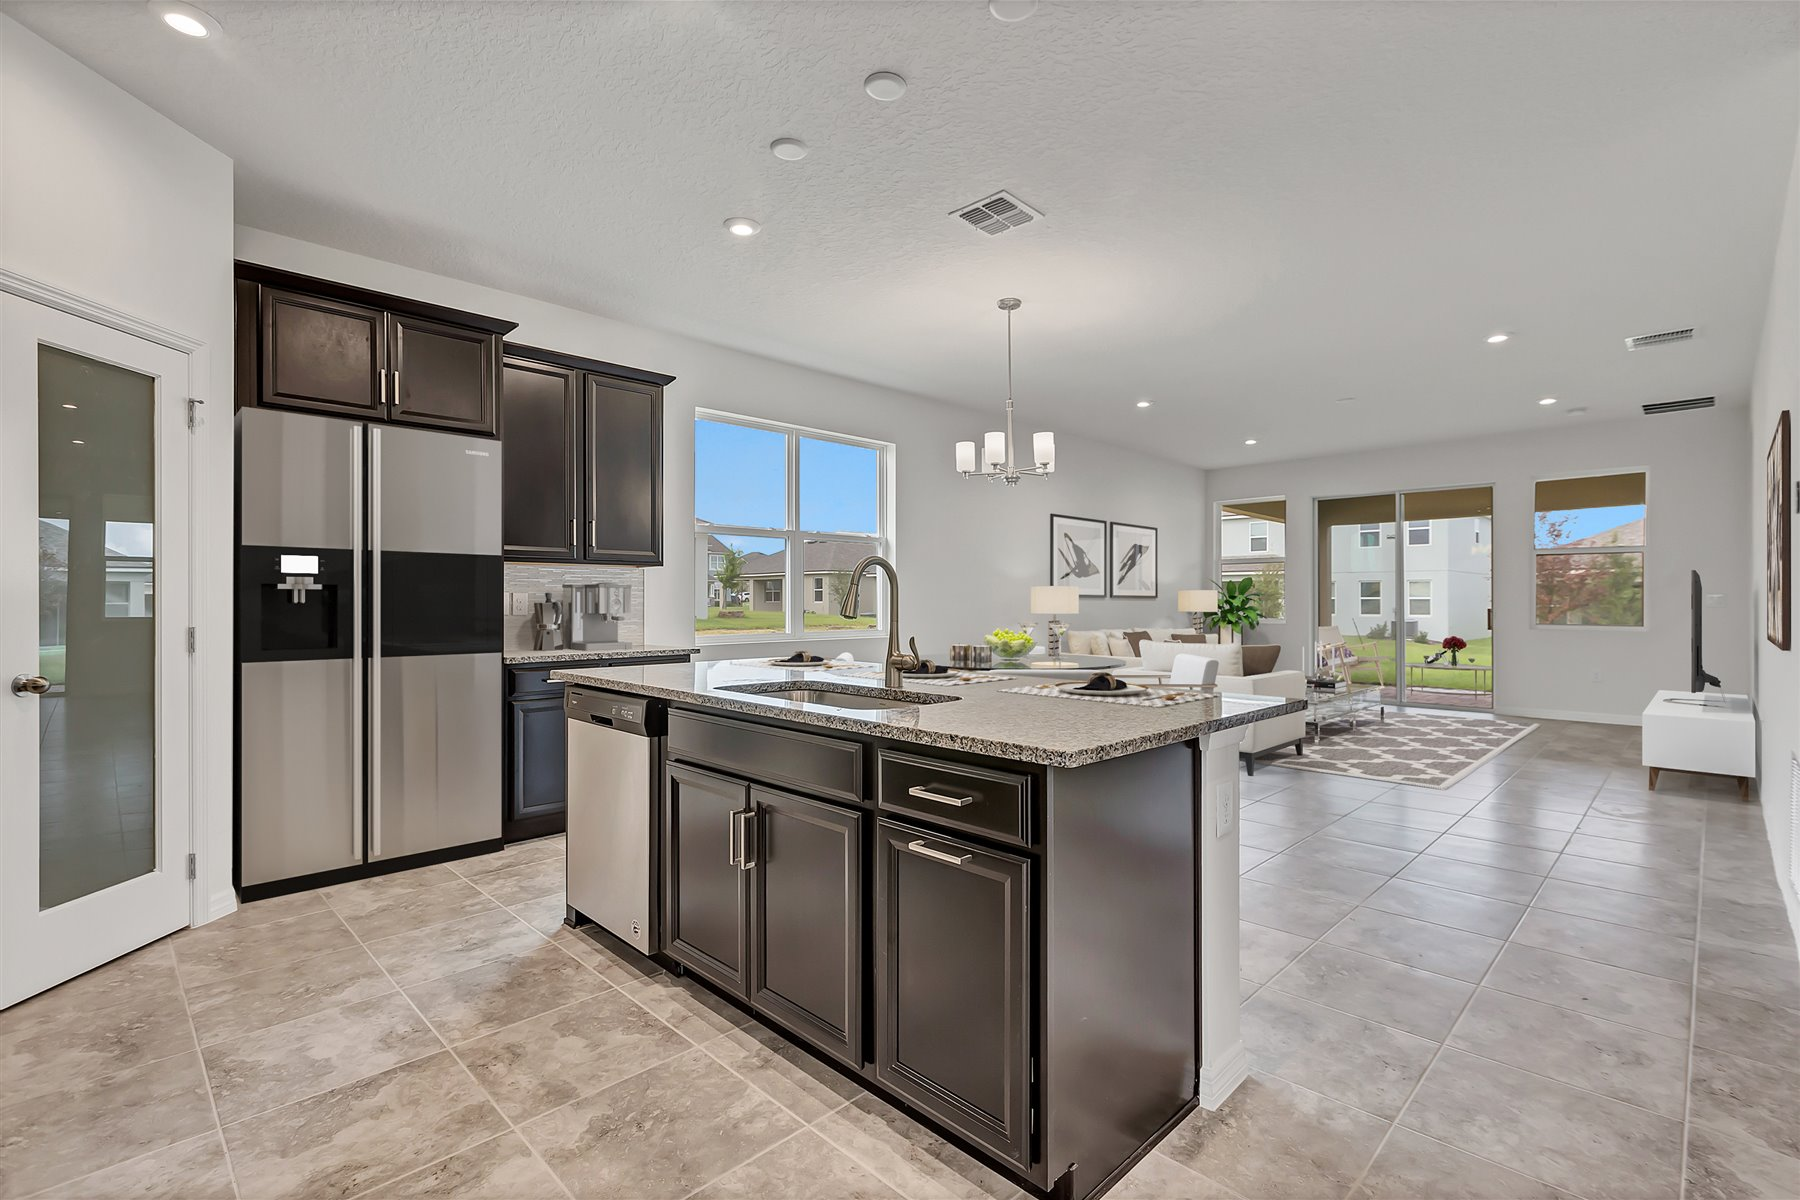 Emma Plan Kitchen at Waterbrooke in Clermont Florida by Mattamy Homes